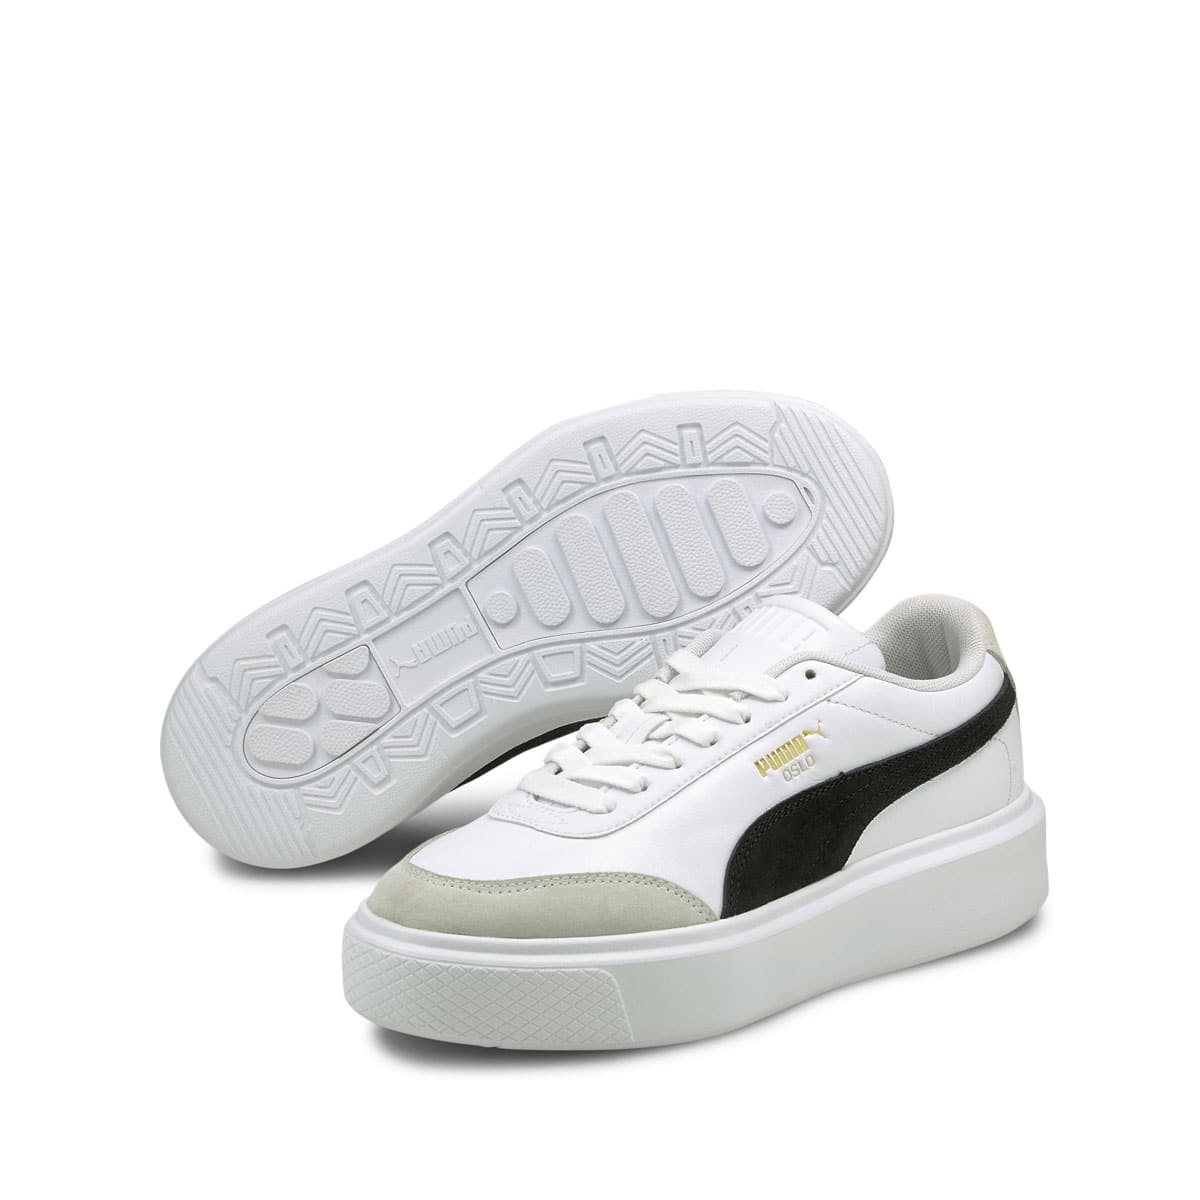 PUMA OSLO MAJA ARCHIVE WNS Puma White-Puma Black 21SP-I_photo_large